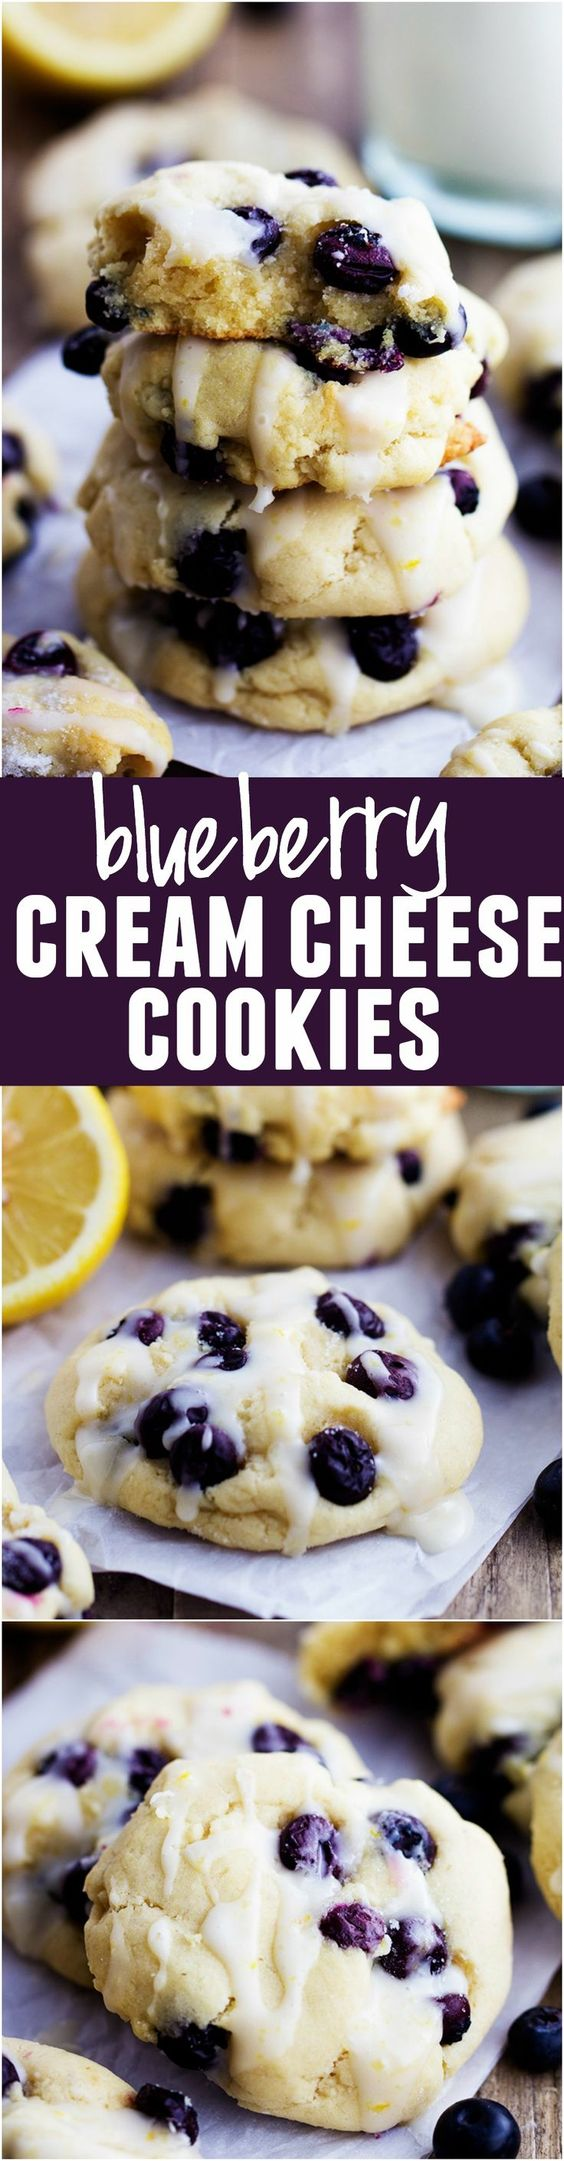 Cream cheese cookies, Cheese cookies and Blueberry cream cheeses on ...